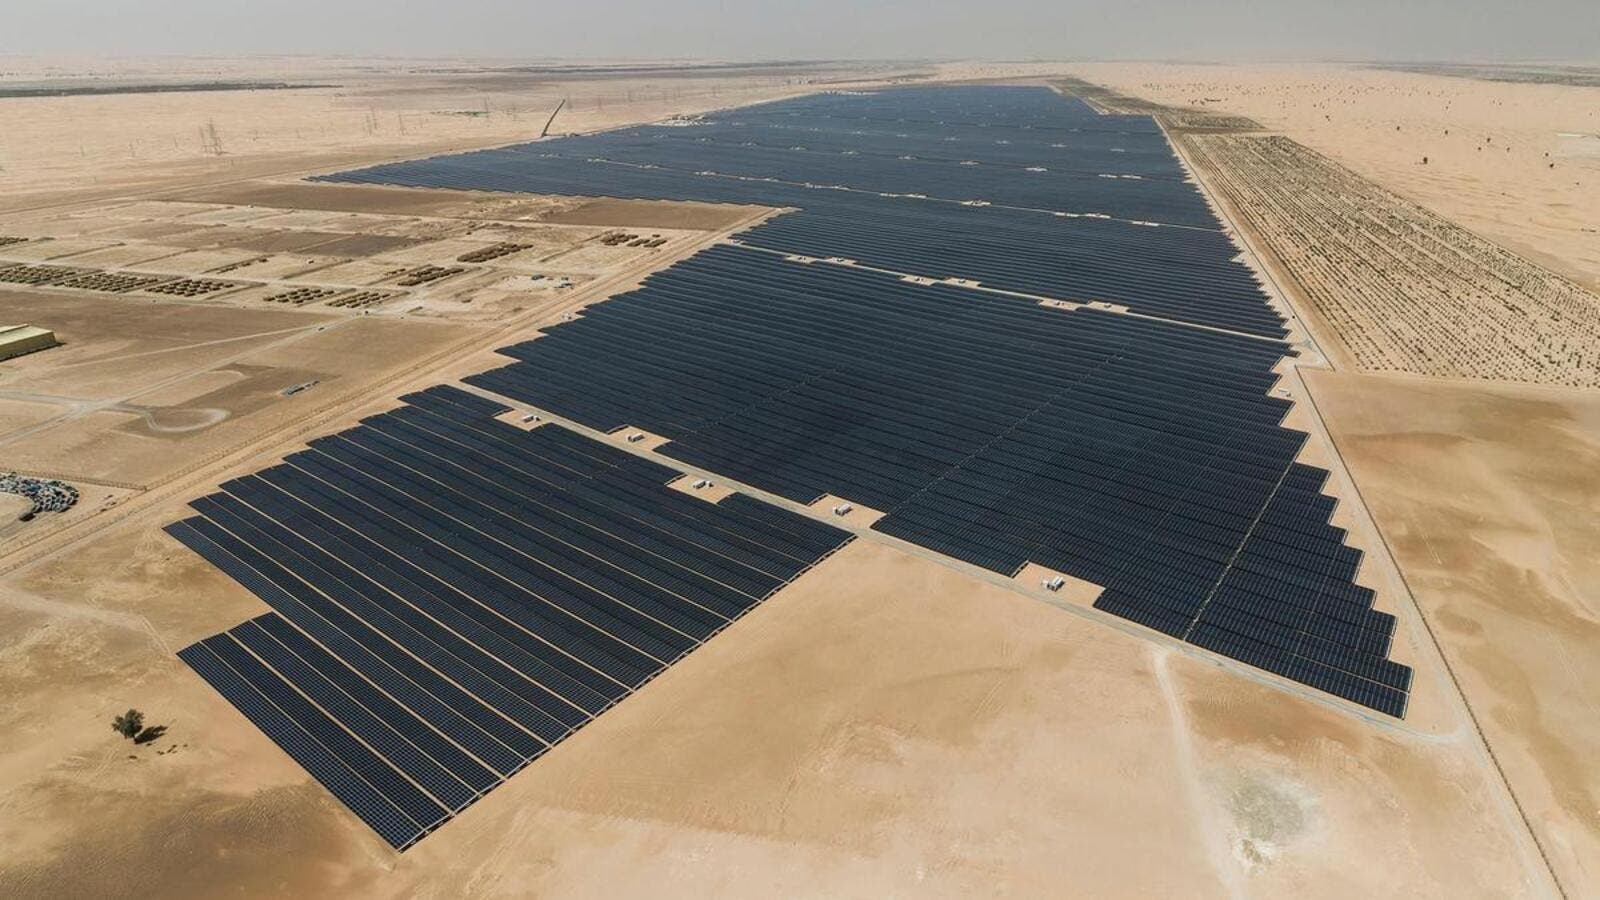 Noor Abu Dhabi is the worlds largest solar panel project /AFP